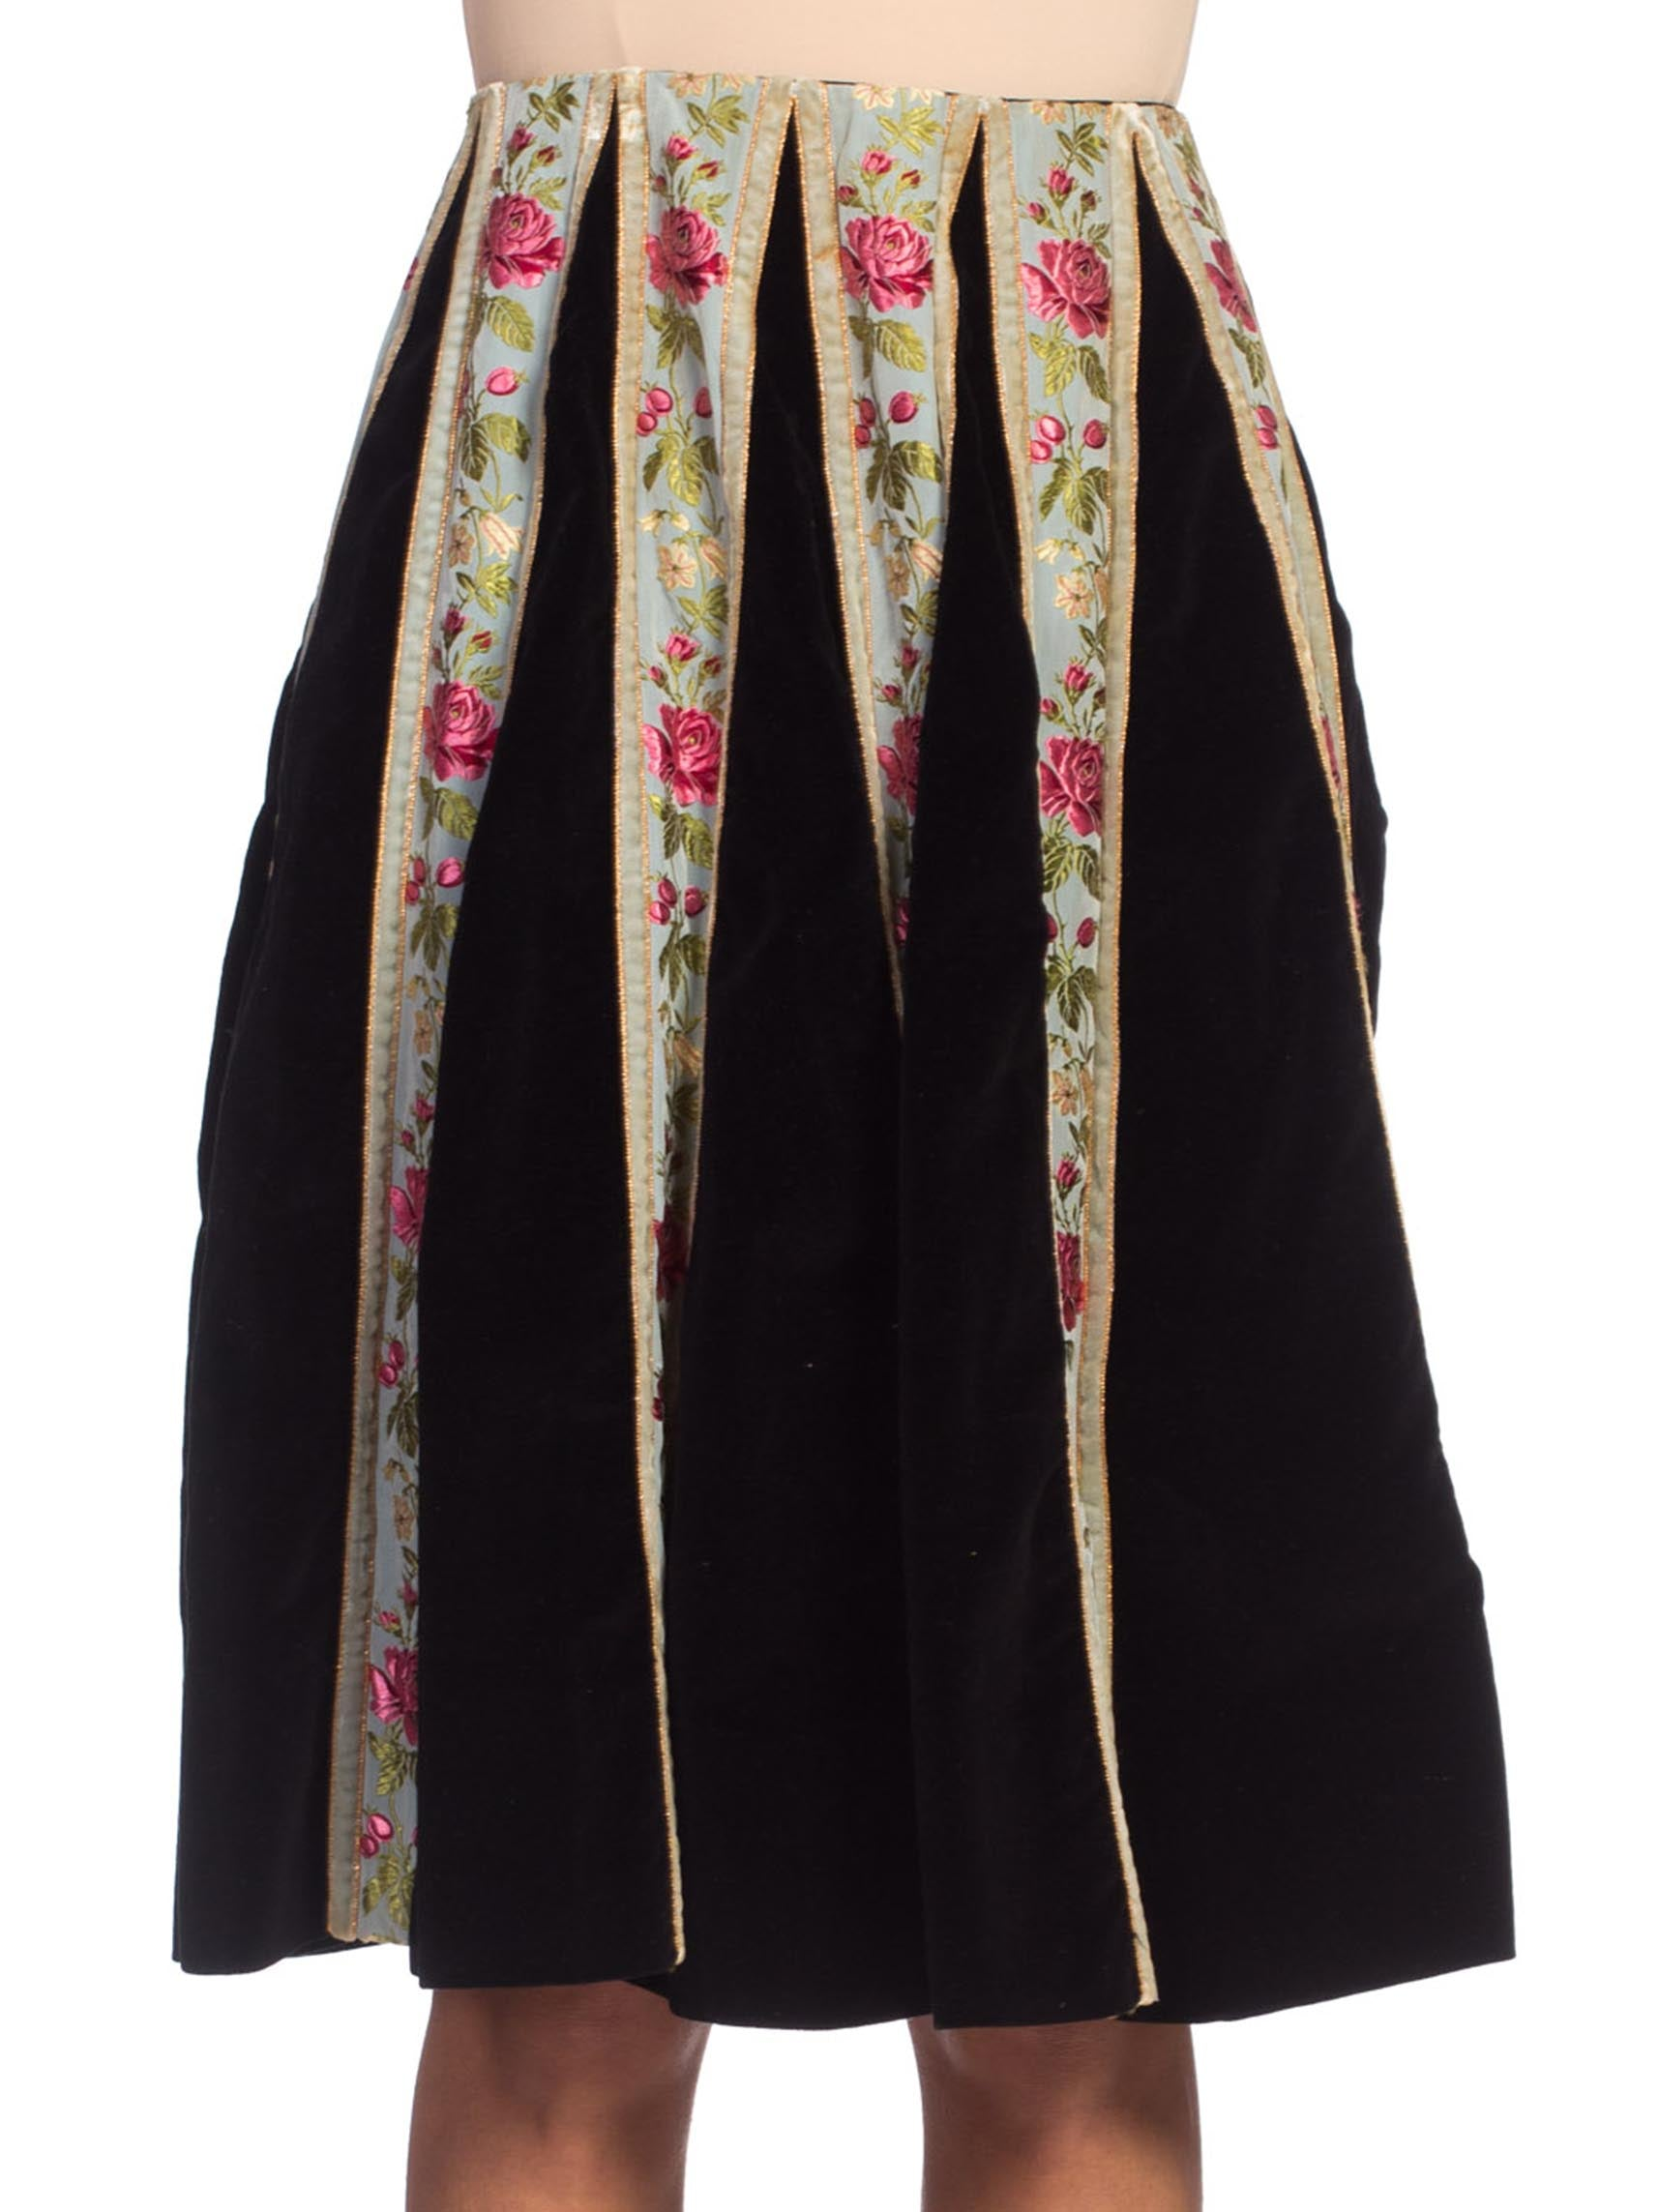 1940/50's Velvet + Silk Ribbon Skirt Made in Italy from Bergdorf Goodman